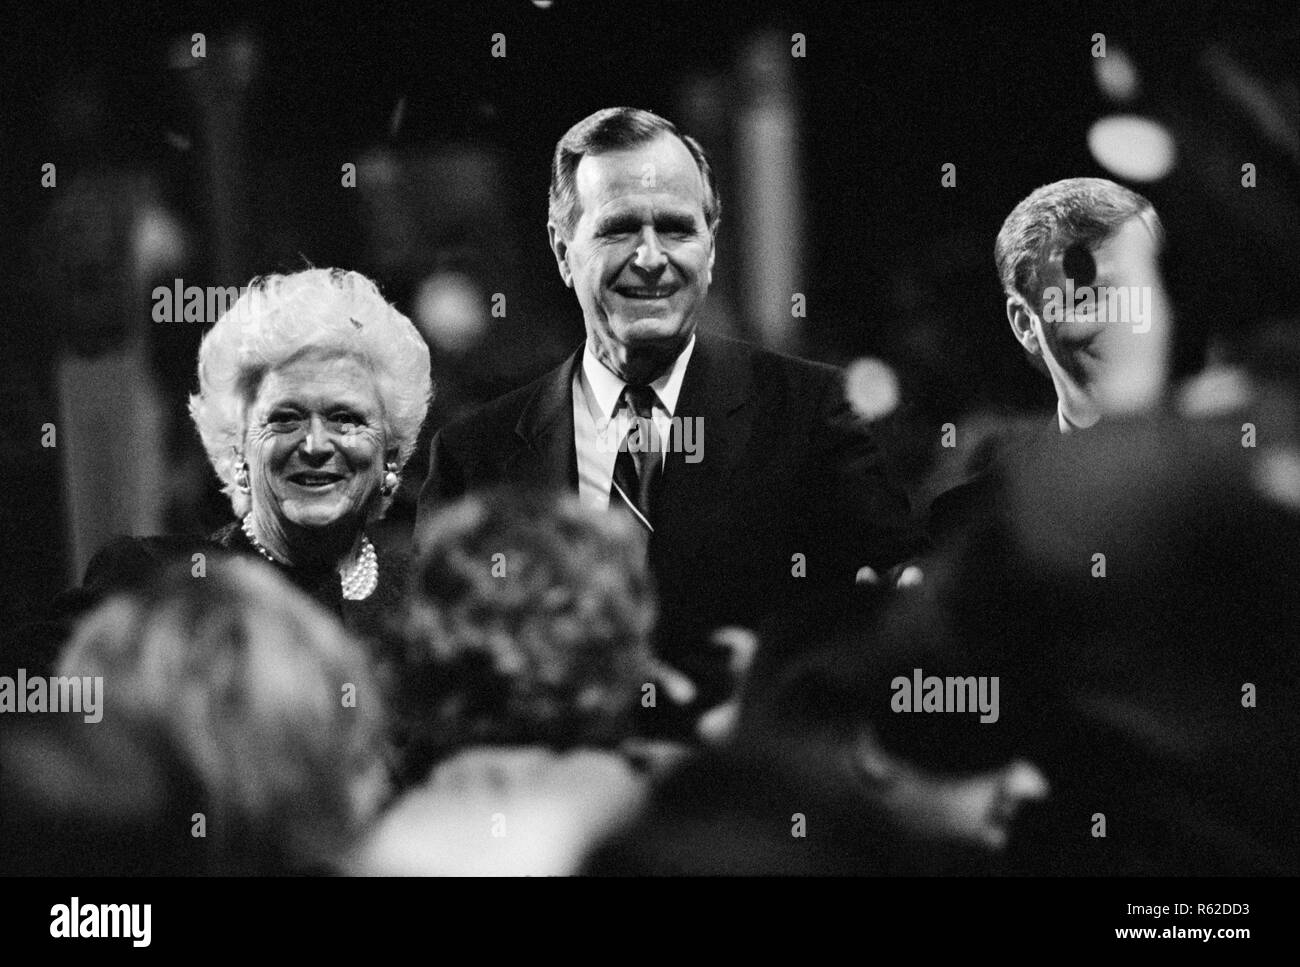 Presidential nominee George H.W. Bush, his wife Barbara Bush and vice presidential nominee Dan Quayle acknowledge the crowd at the 1992 Republican National Convention in Houston, Texas. - Stock Image